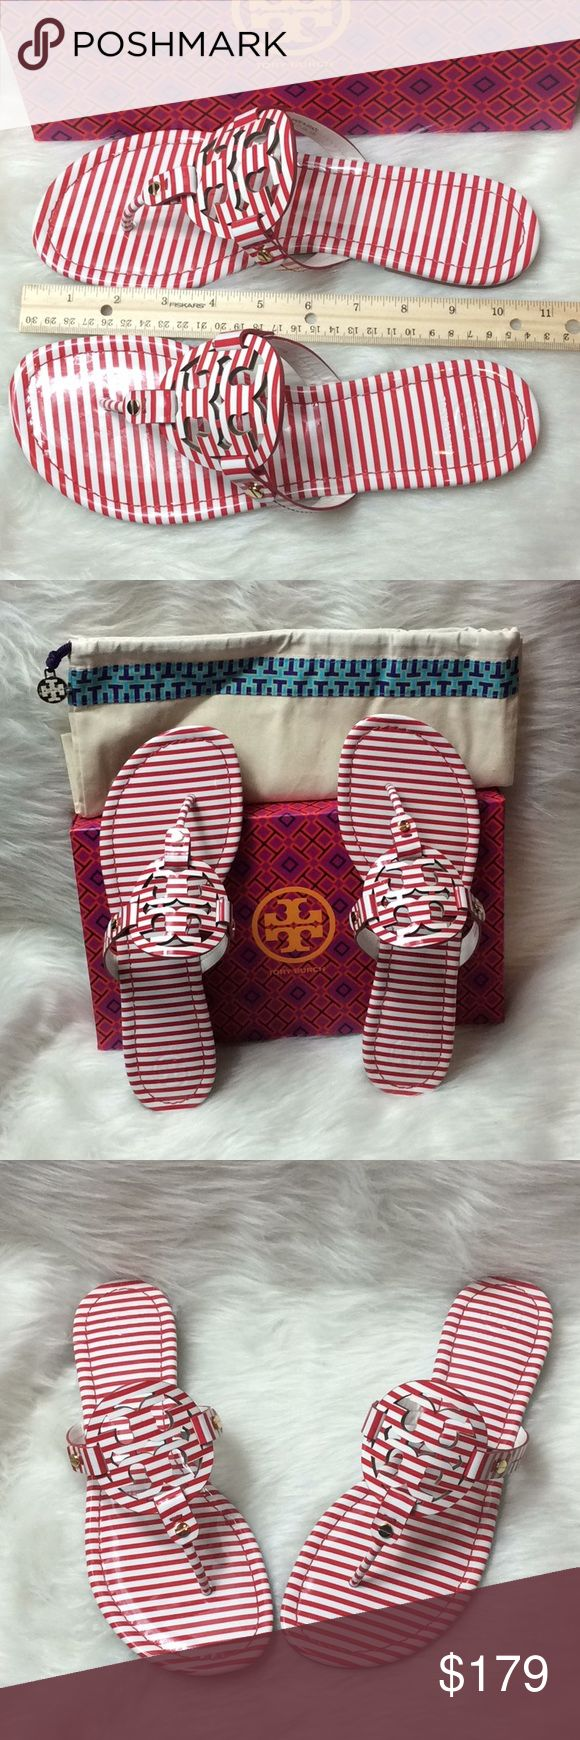 Tory Burch Miller Nautical Sandals Miller Size 10 nautical stripes.  Nantucket red and white.   Smoke free home.   Includes box and dust bag Tory Burch Shoes Flats & Loafers